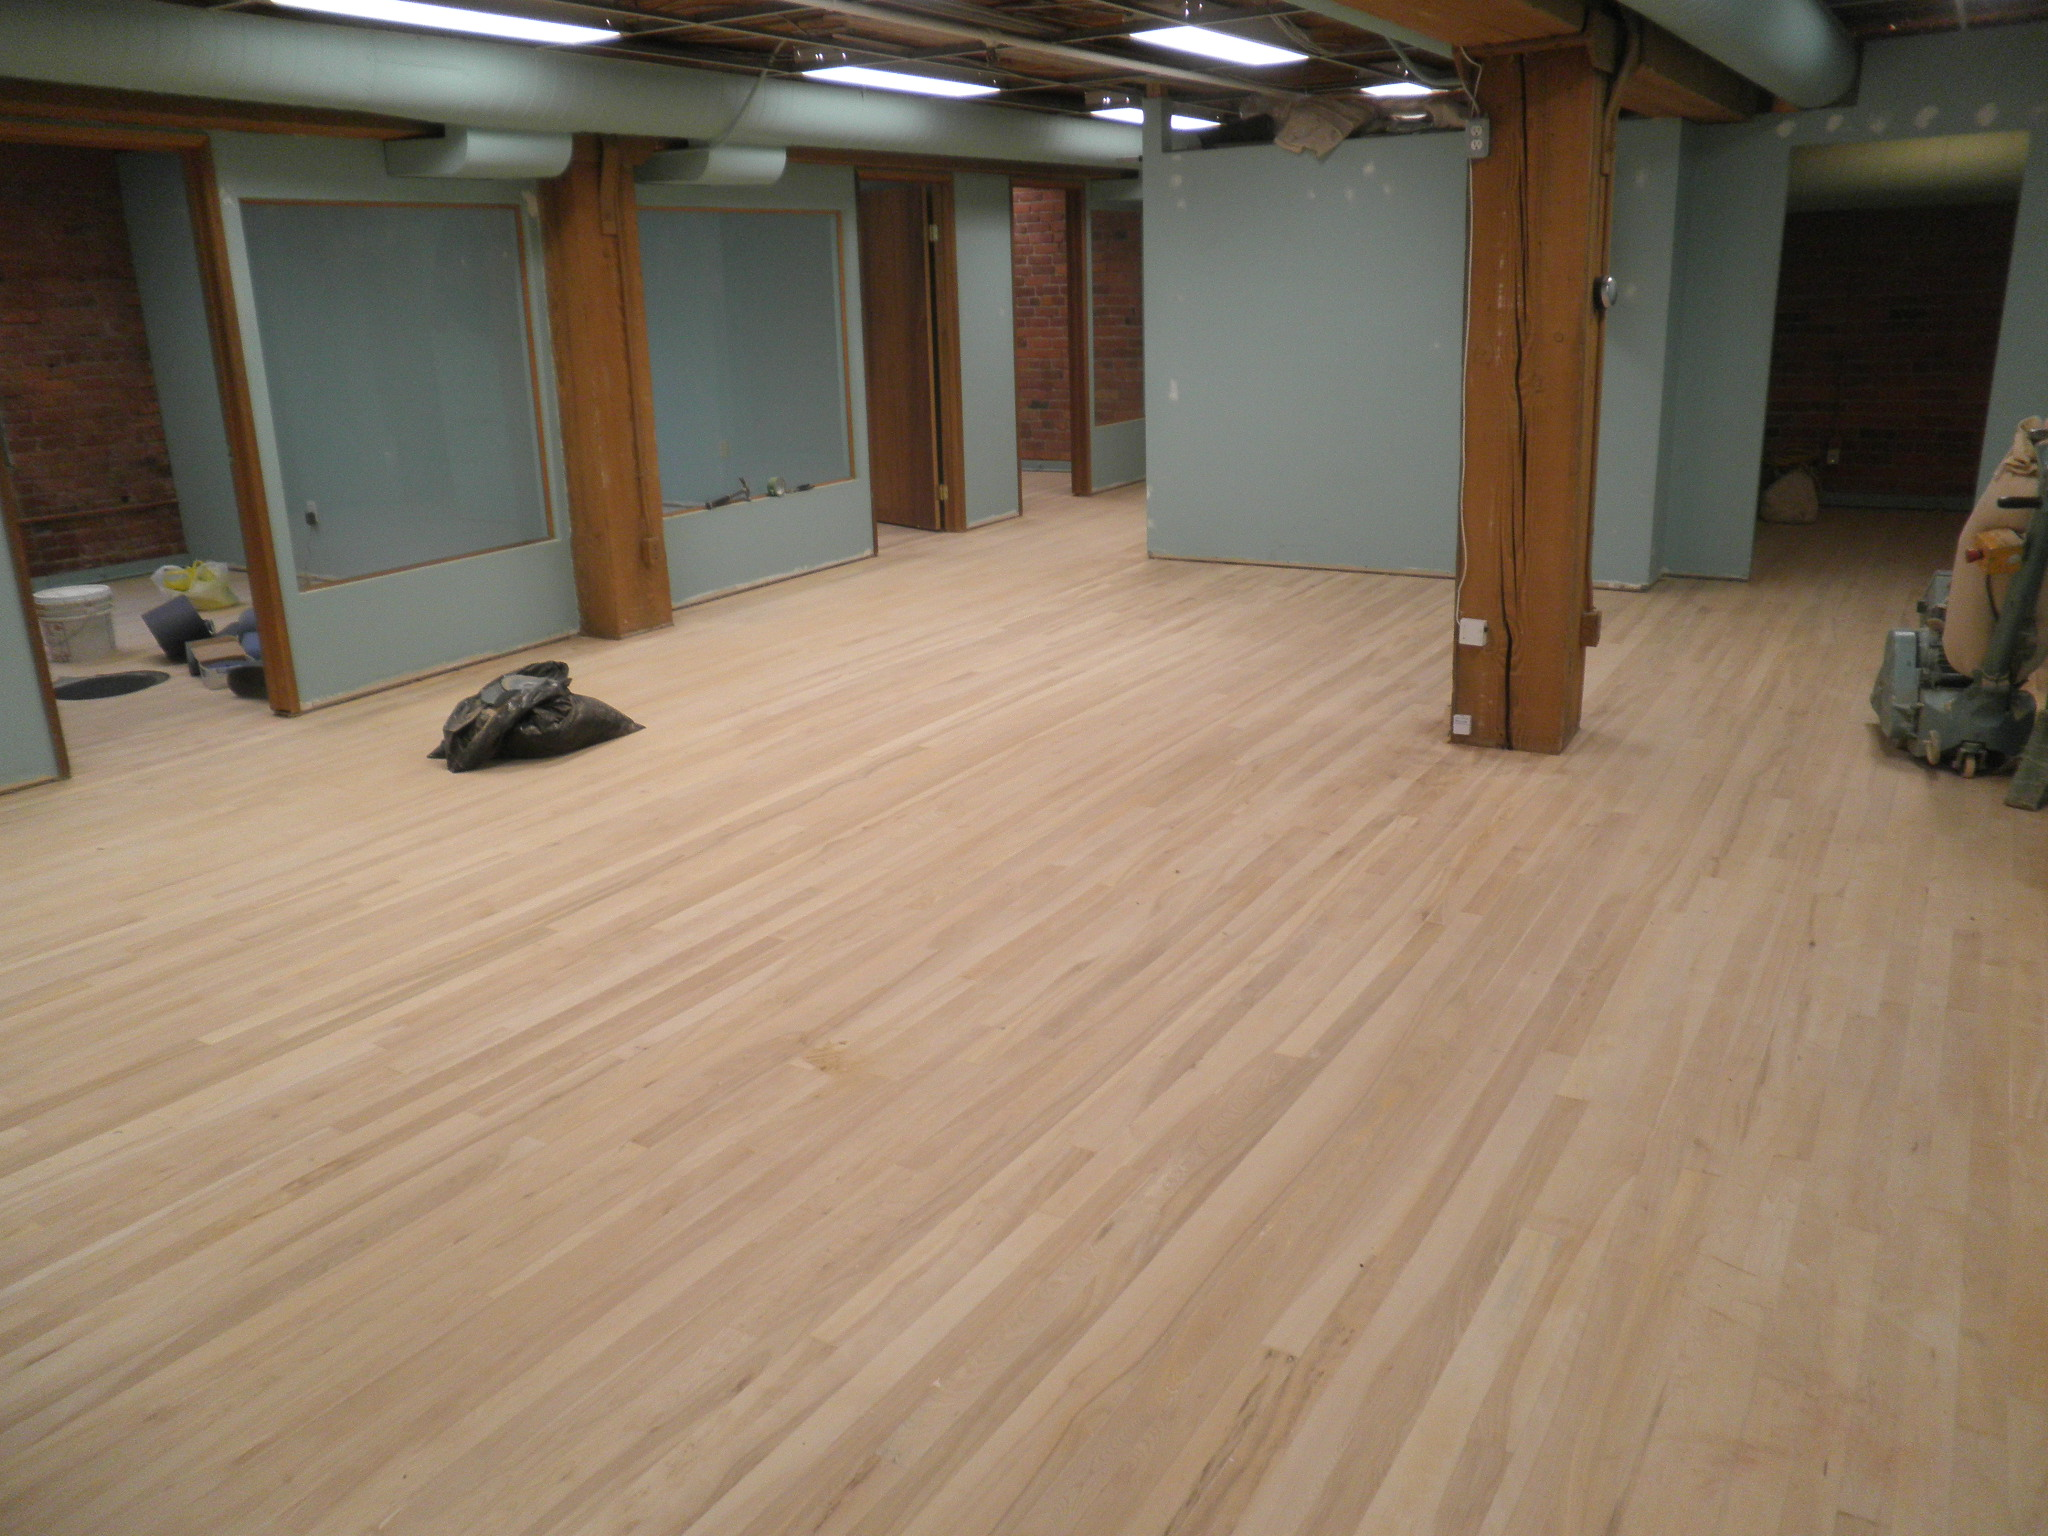 Hardwood floor refinishing hardwood floor refinishing for Wood floor refinishing